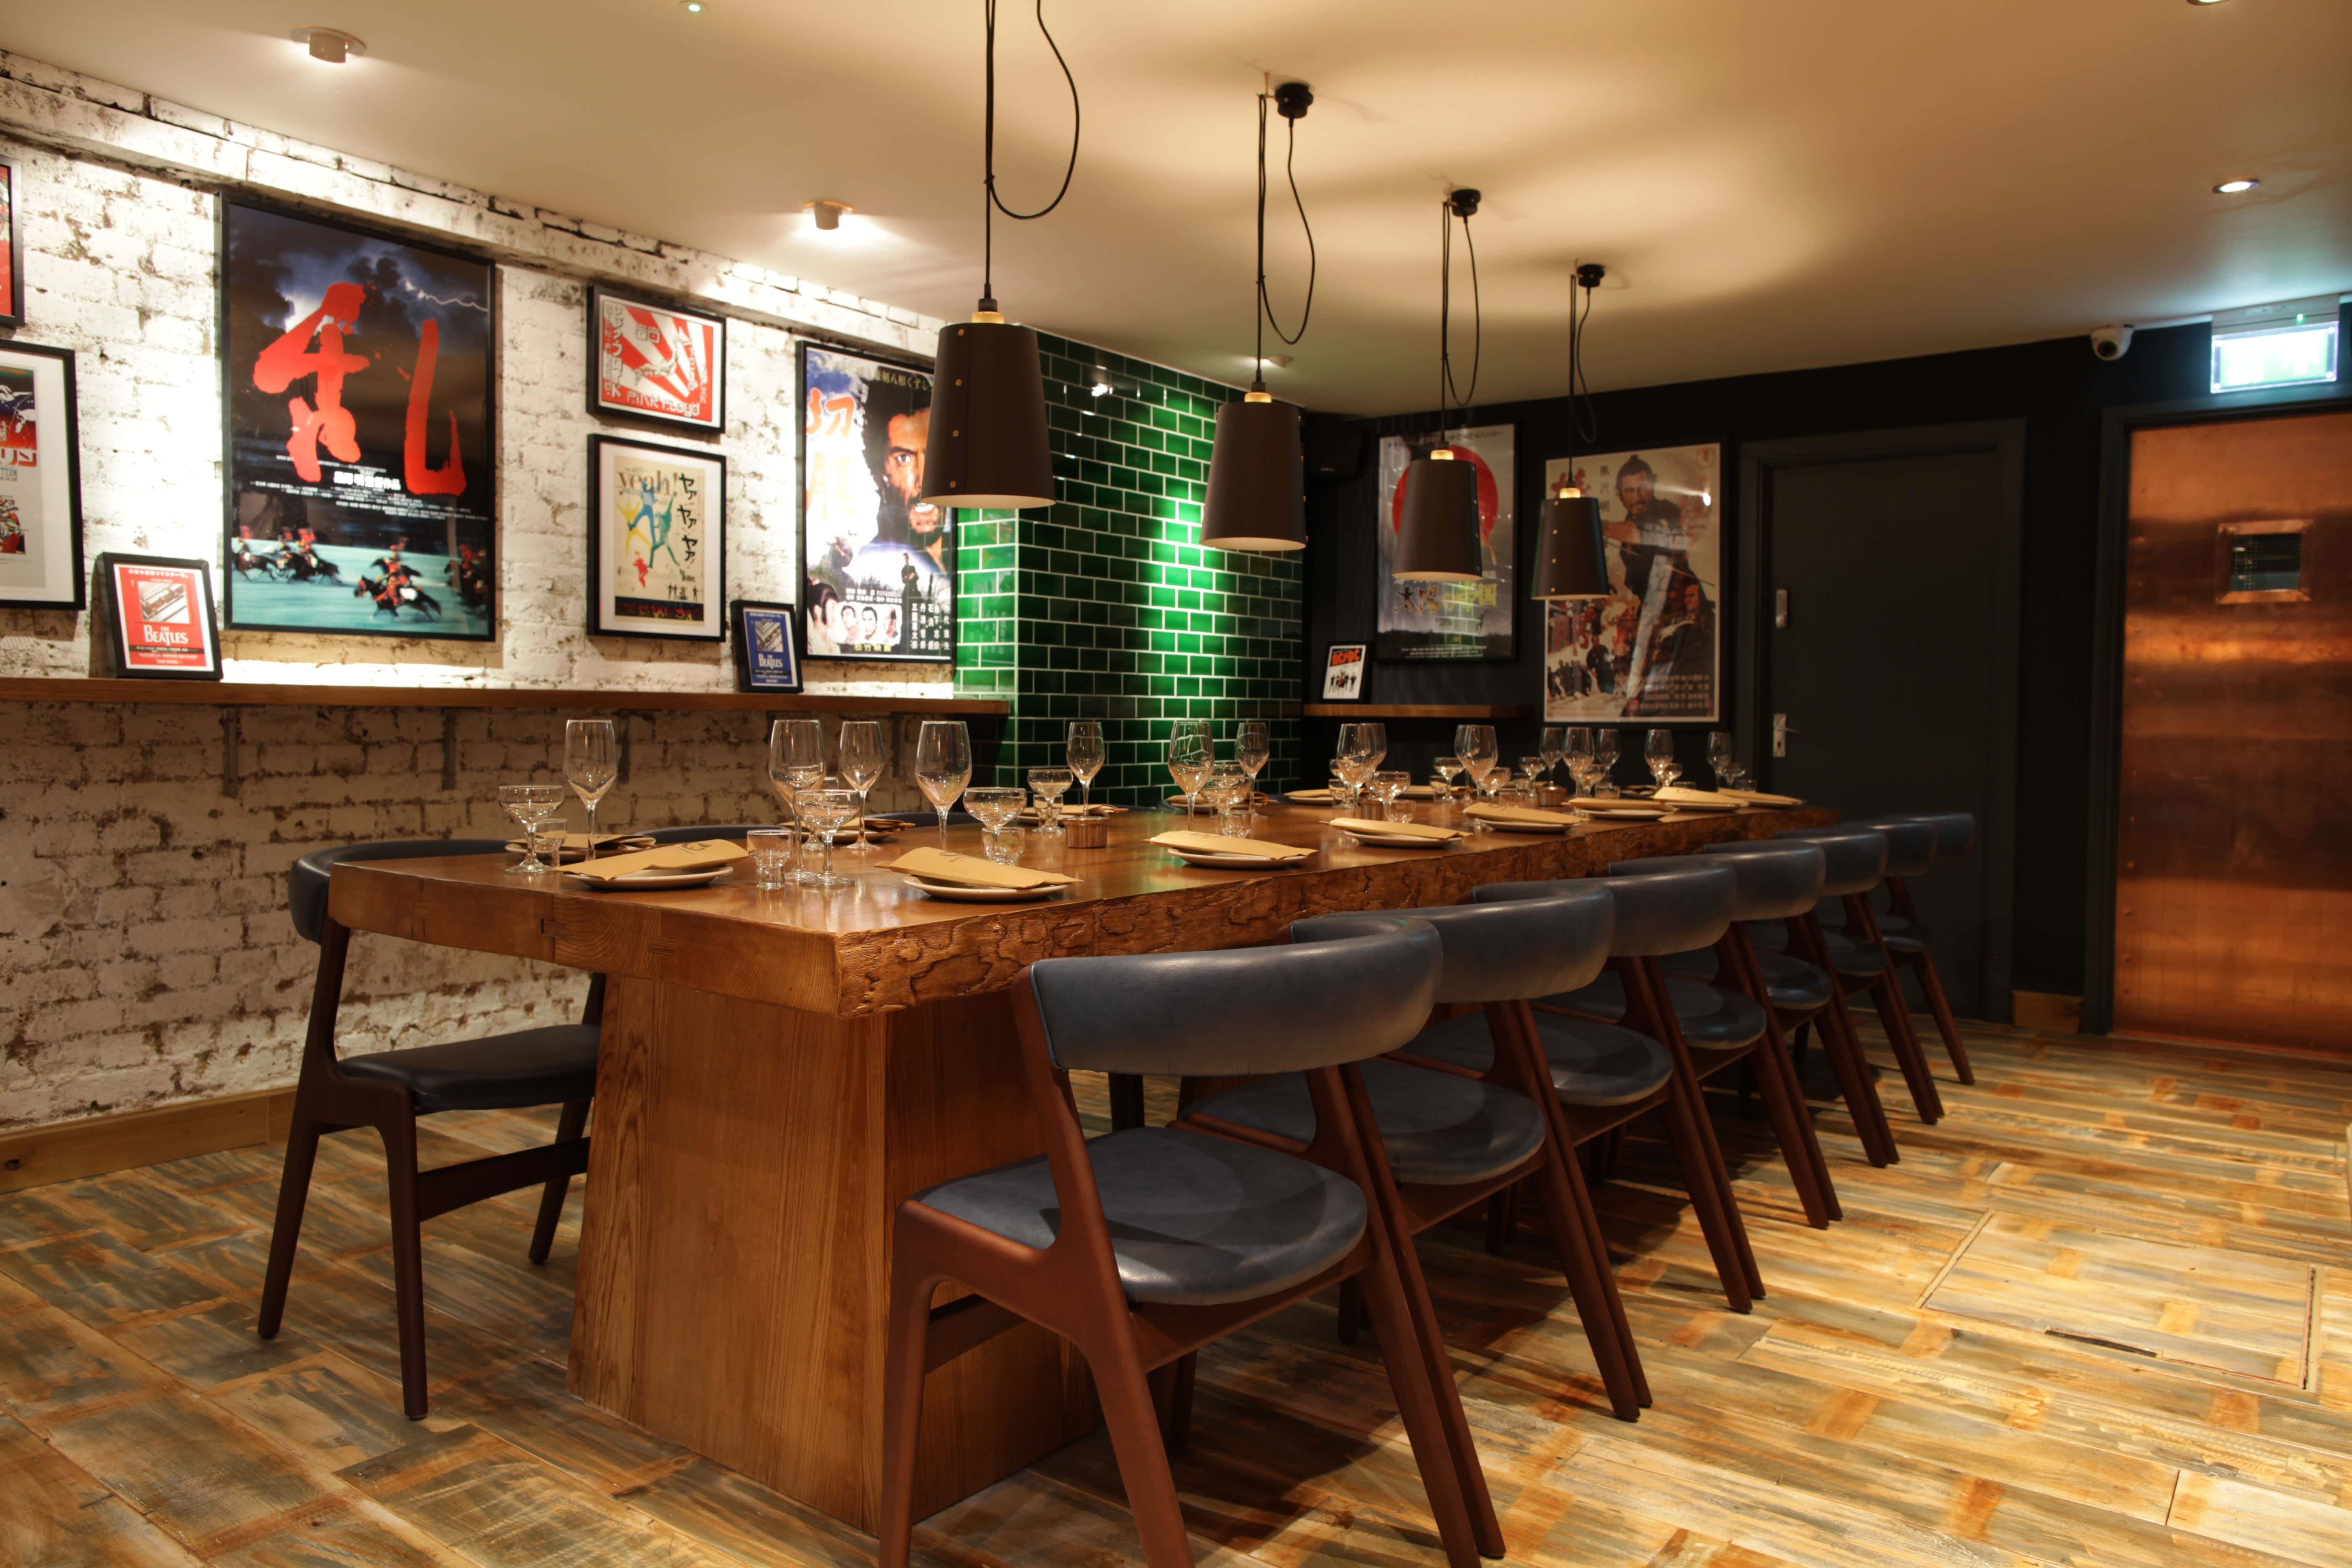 Private Dining Room, Shack-Fuyu